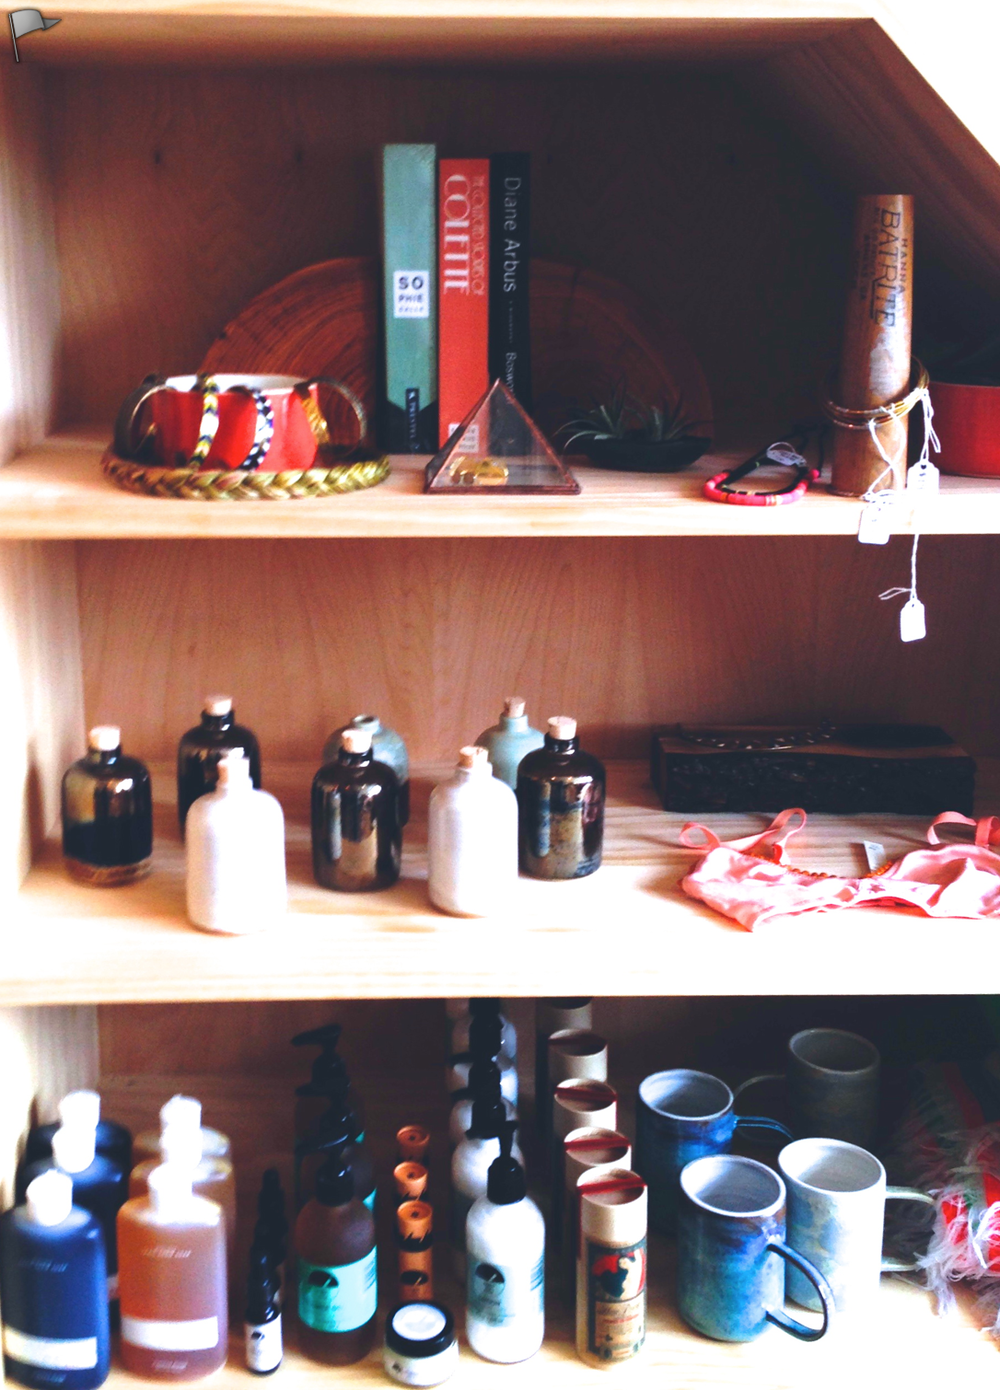 Juniper Ridge, Earth Tu Face, Object and Totem, Rachel Comey. Shelving by Marvin Freitas